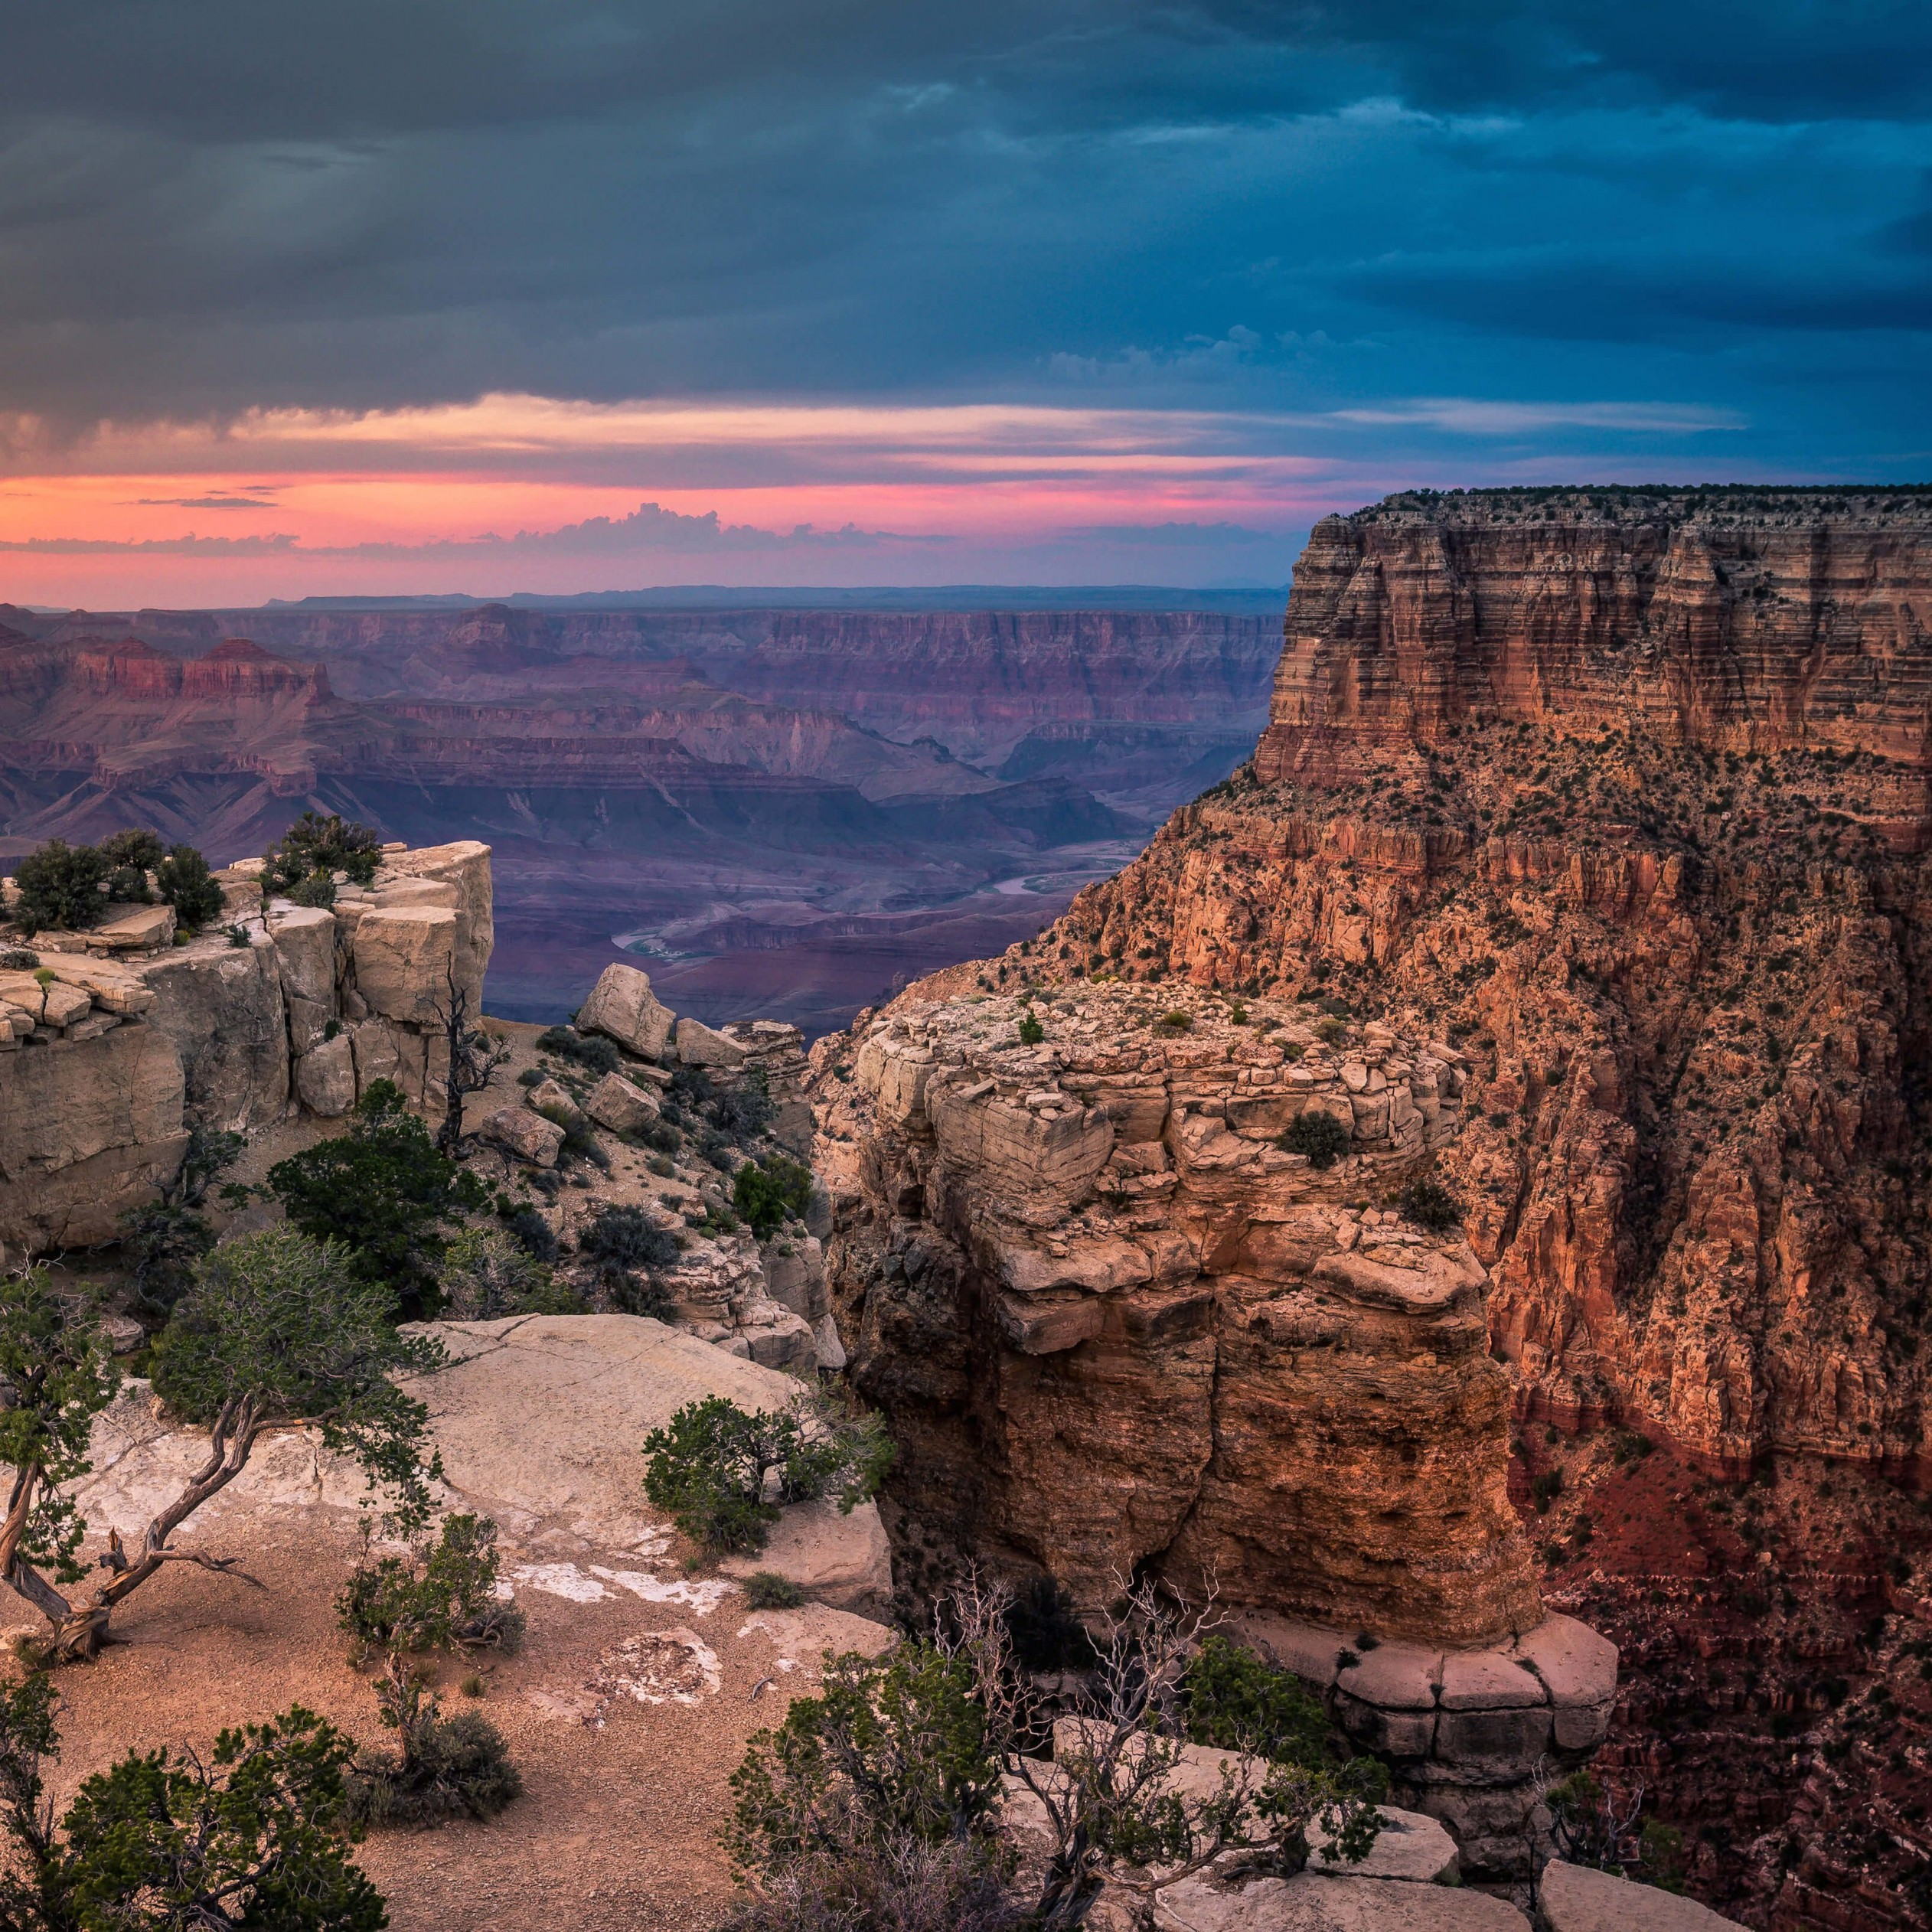 Sunset At The Grand Canyon Wallpaper for Apple iPad Air